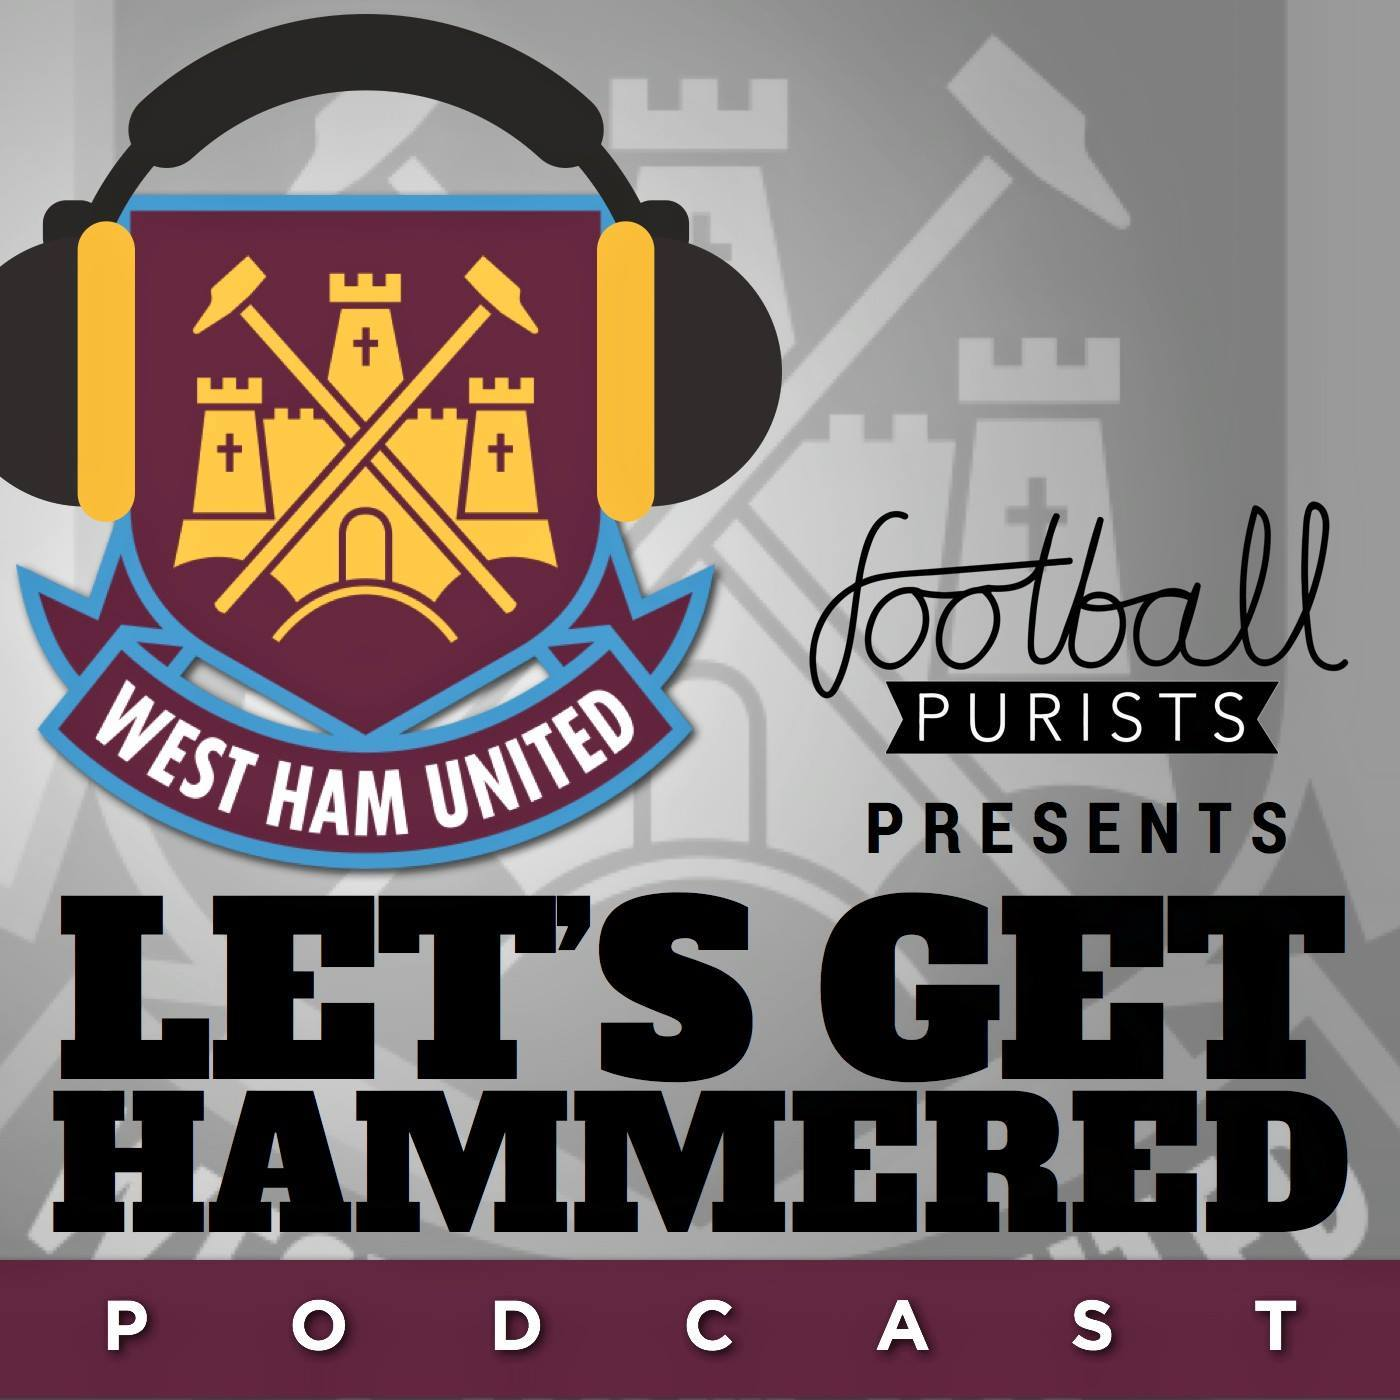 West Ham - Let's Get Hammered: Cech Out the New West Ham